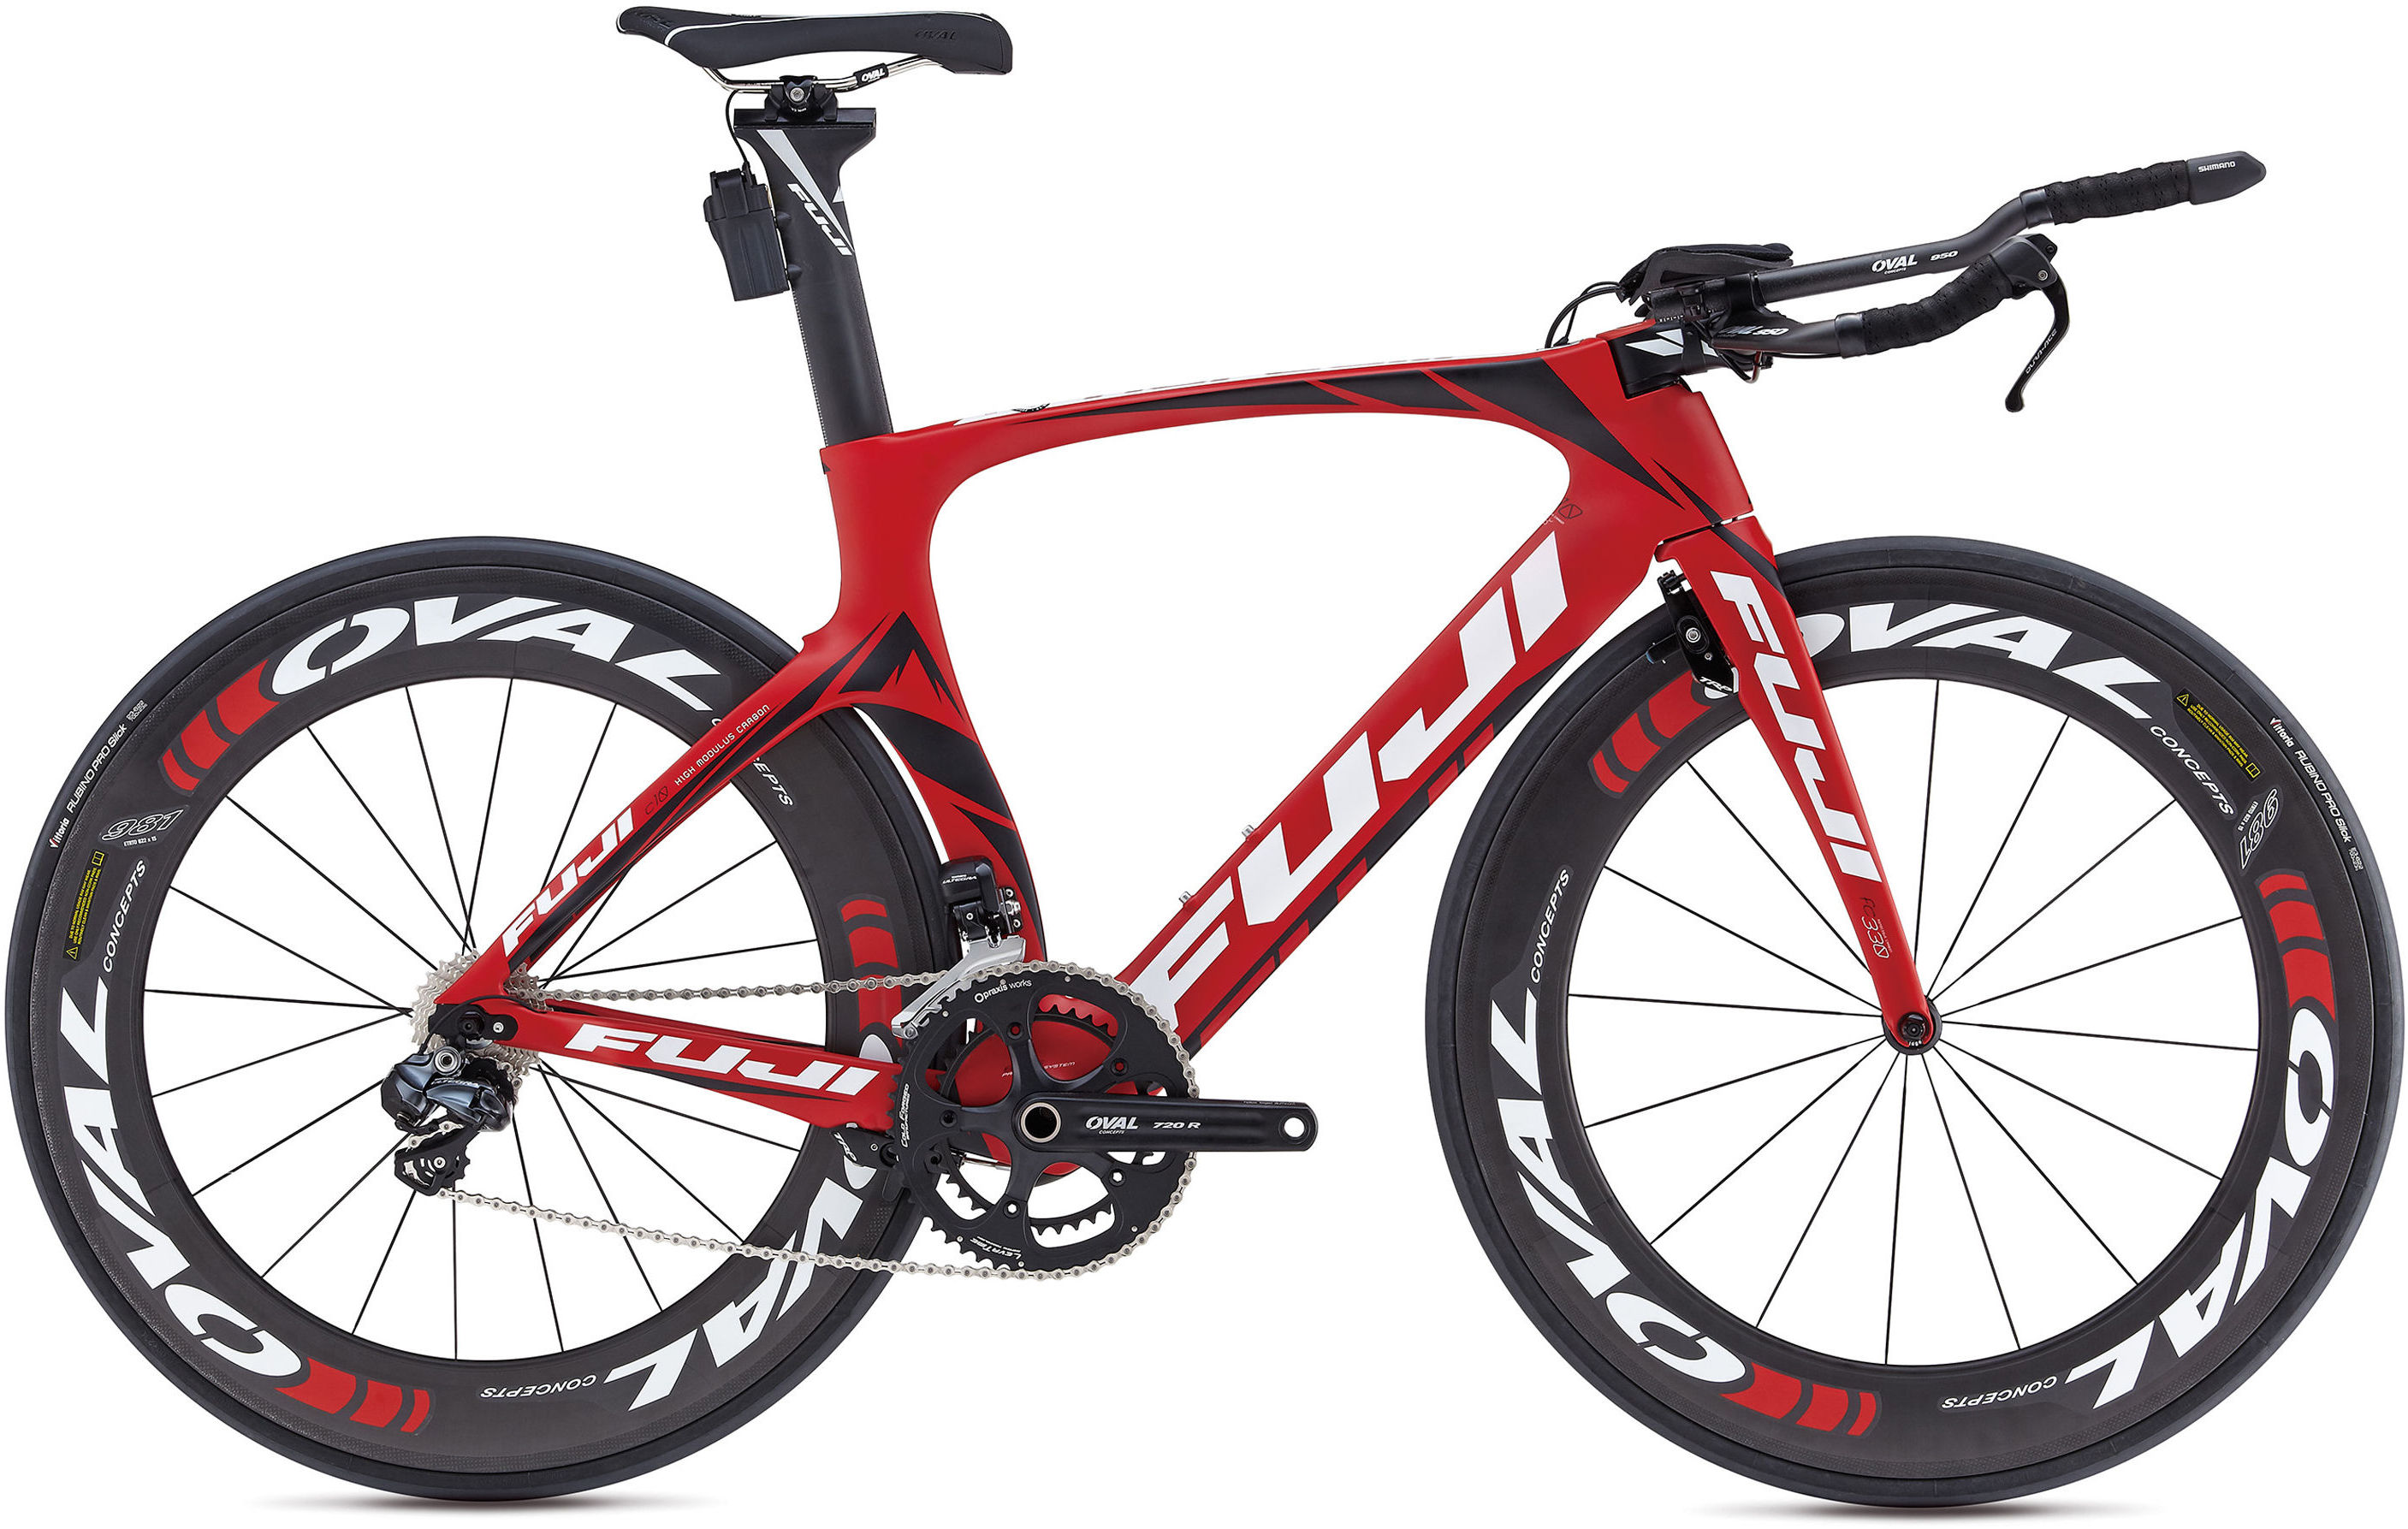 Fuji Norcom Straight 1 3 2014 Review The Bike List